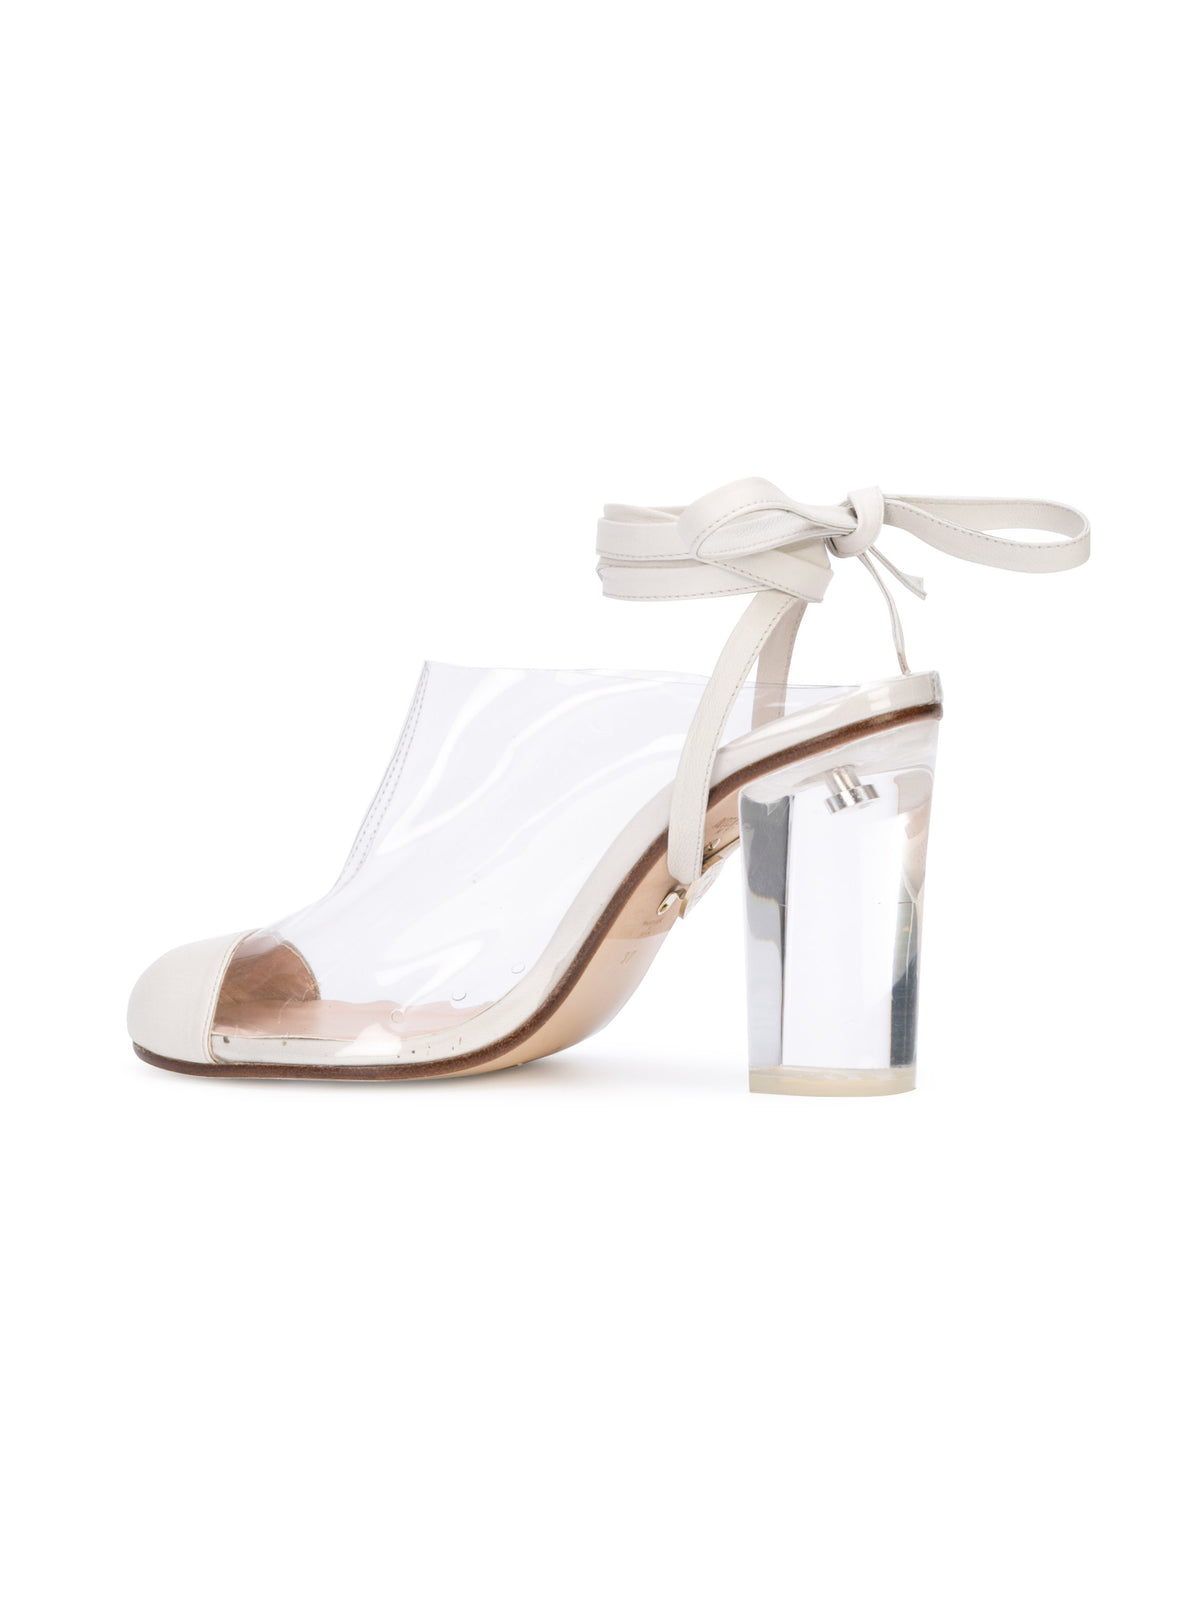 Grease Mule - Pvc and white nappa leather mule, acrylic heel and removable wraps. Back Angle View